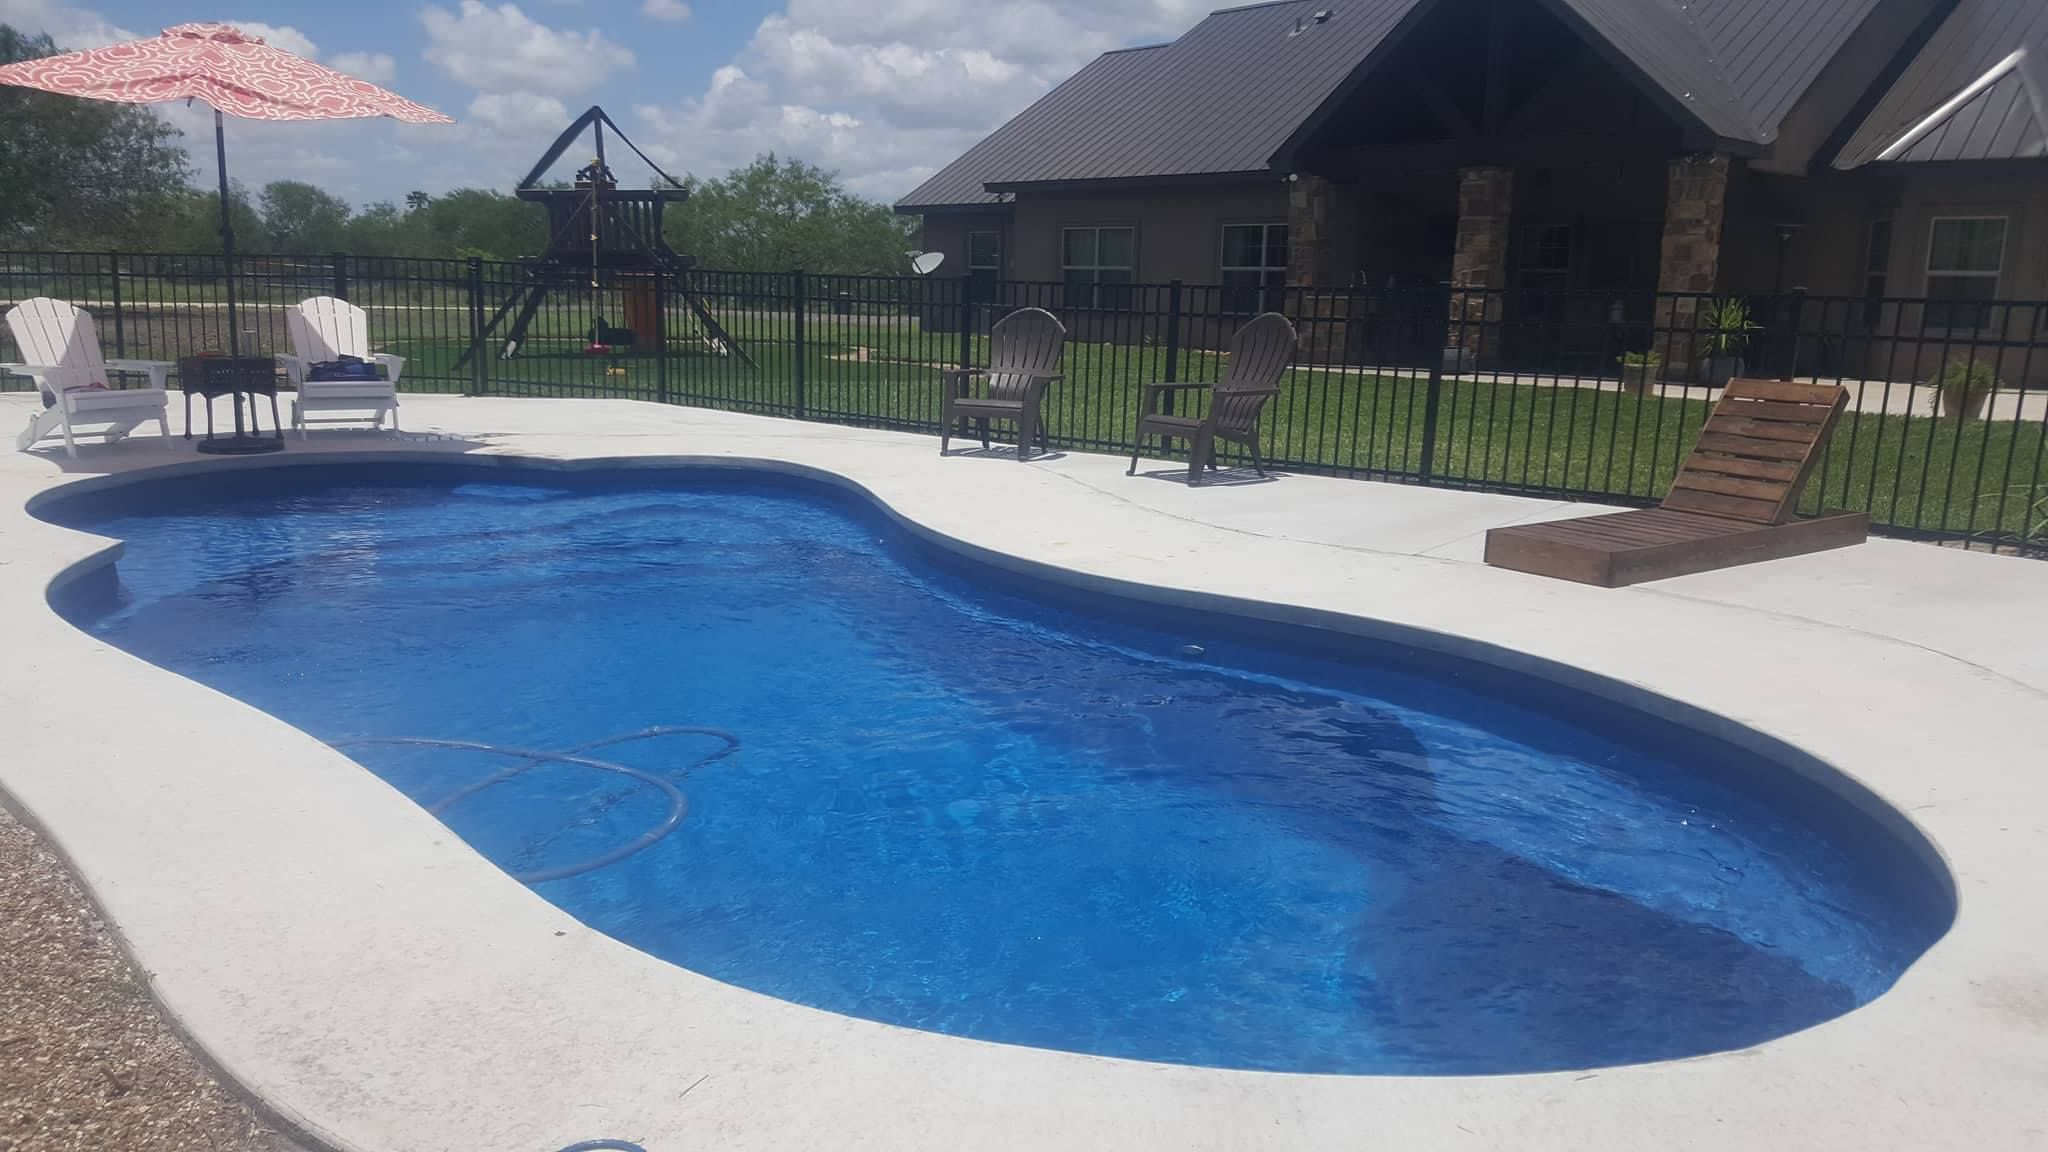 Thanks To The Atkinson Family In South Texas For Sharing A Photo Of Their New Leisure Pools